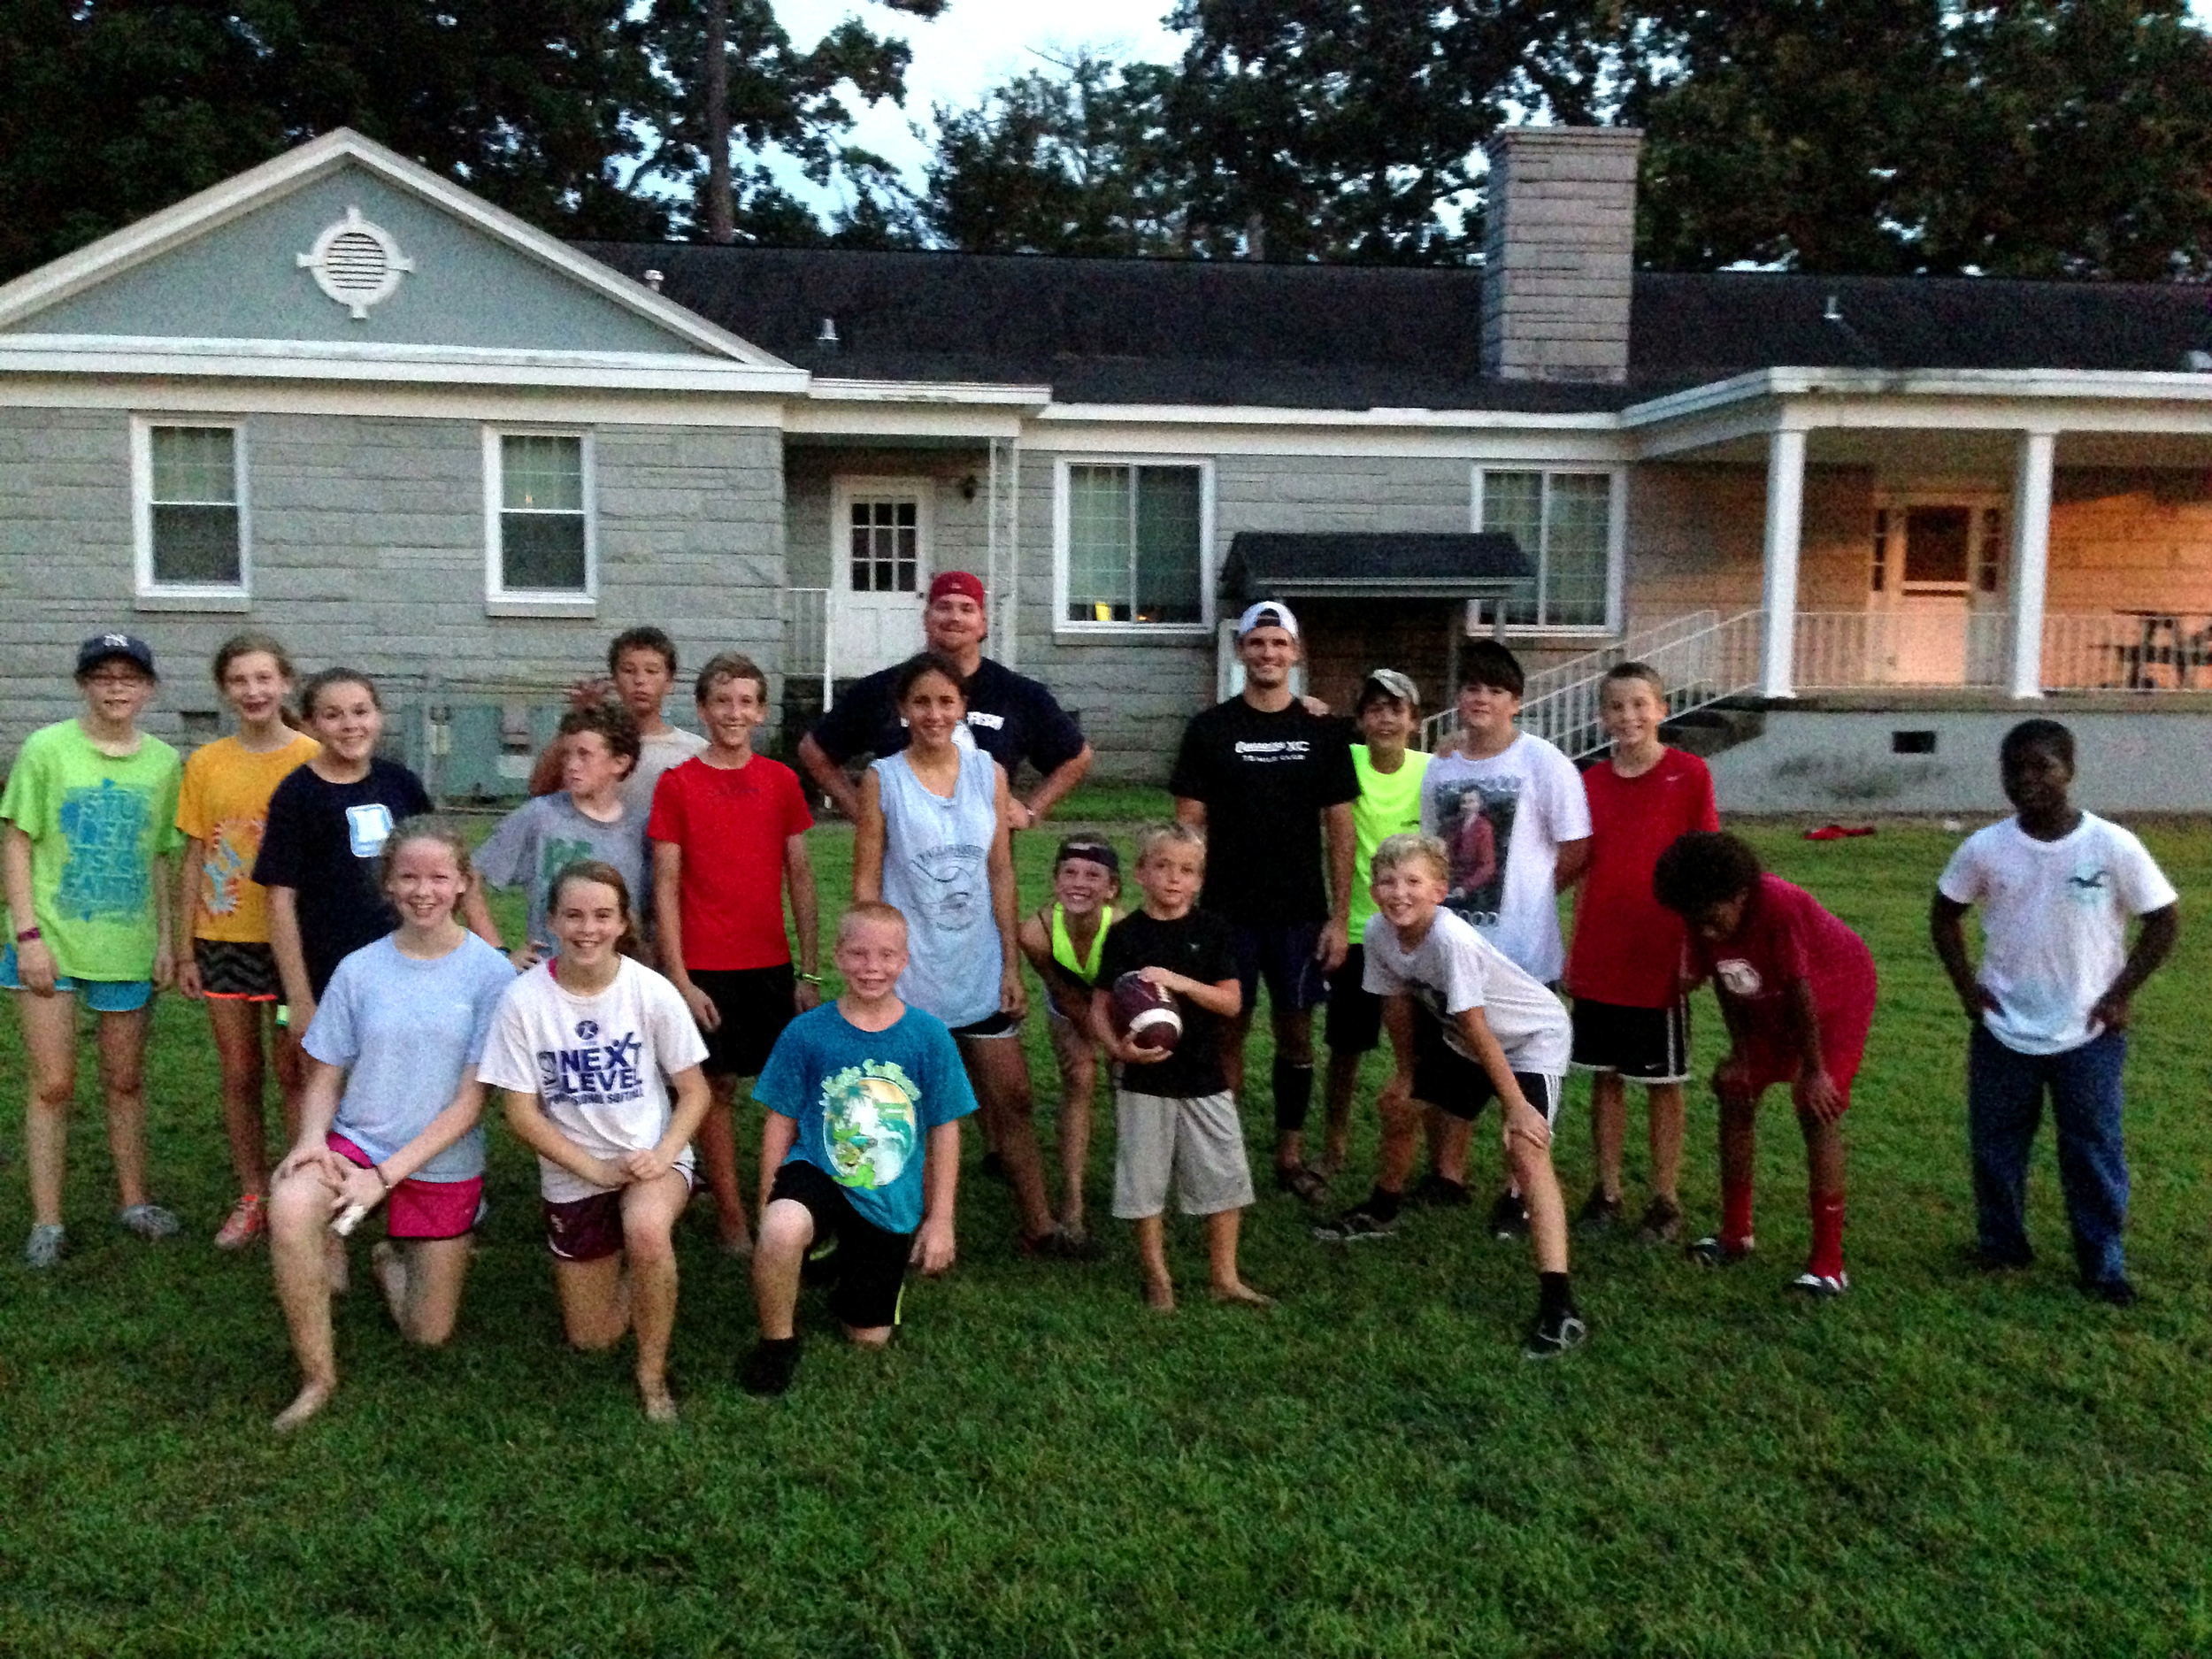 Some of our group with a few of the boys who joined in playing football at night.